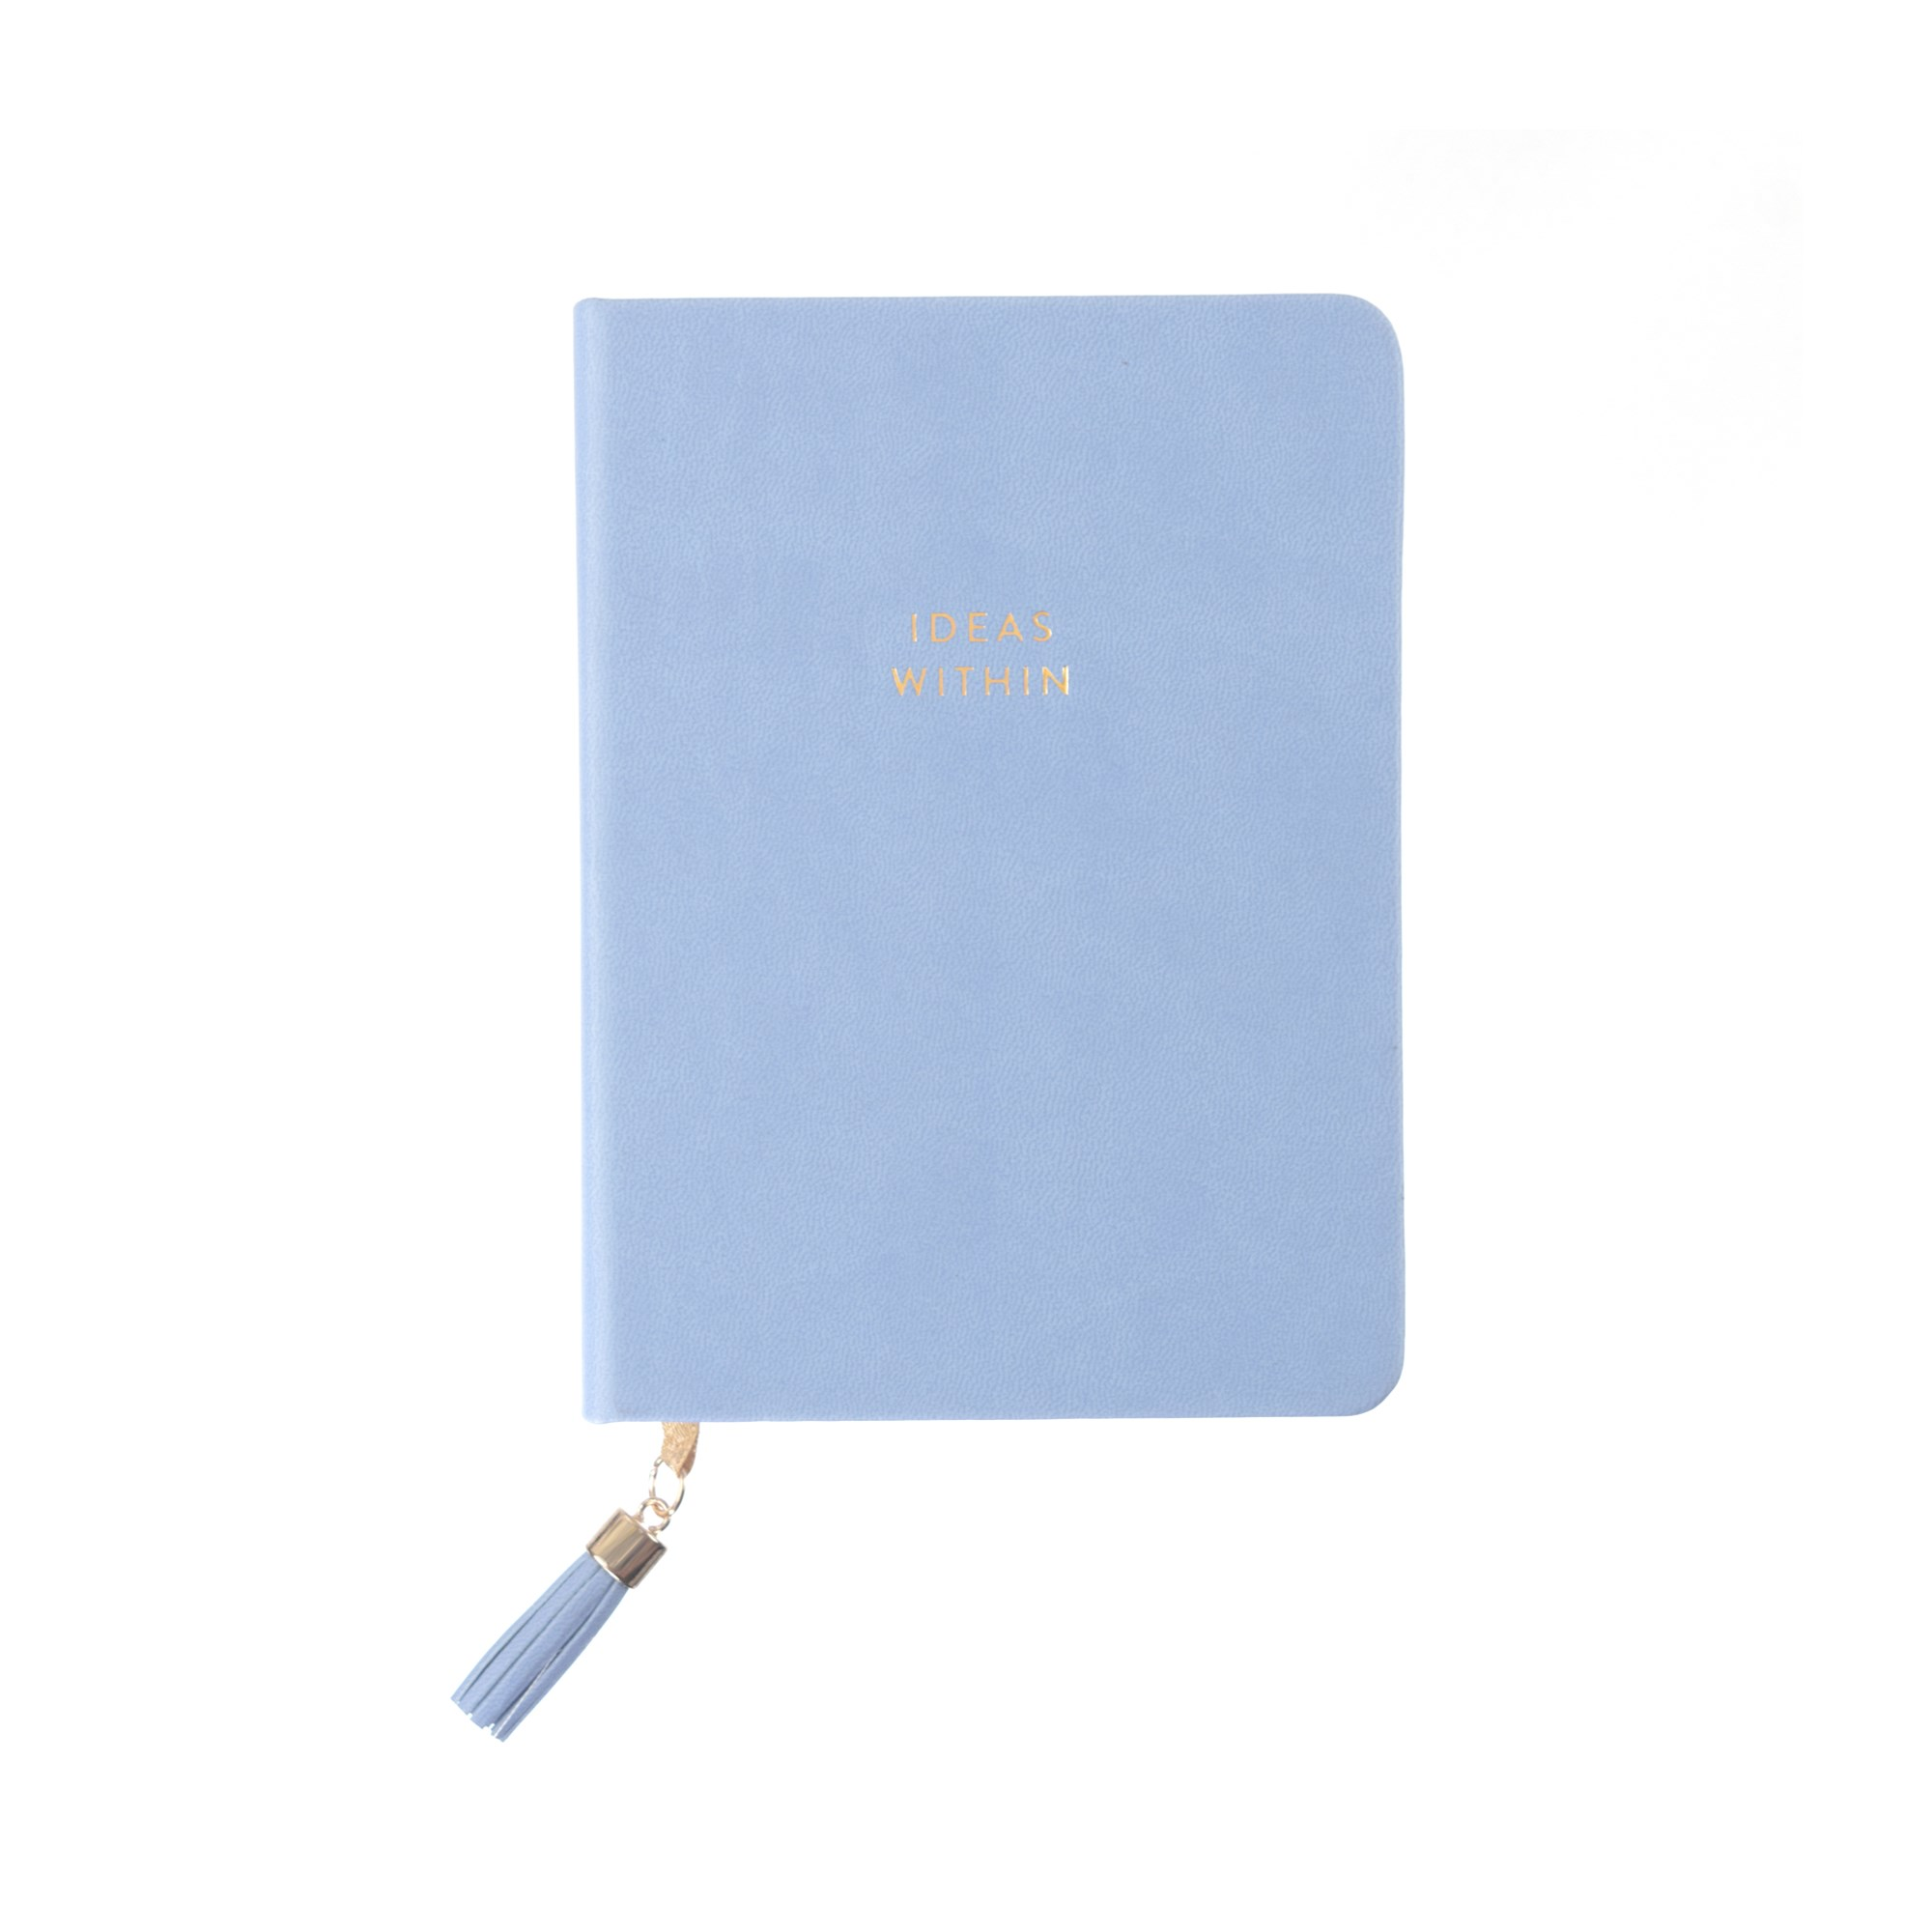 Tassel Journal: Periwinkle Ideas Within (D320d)